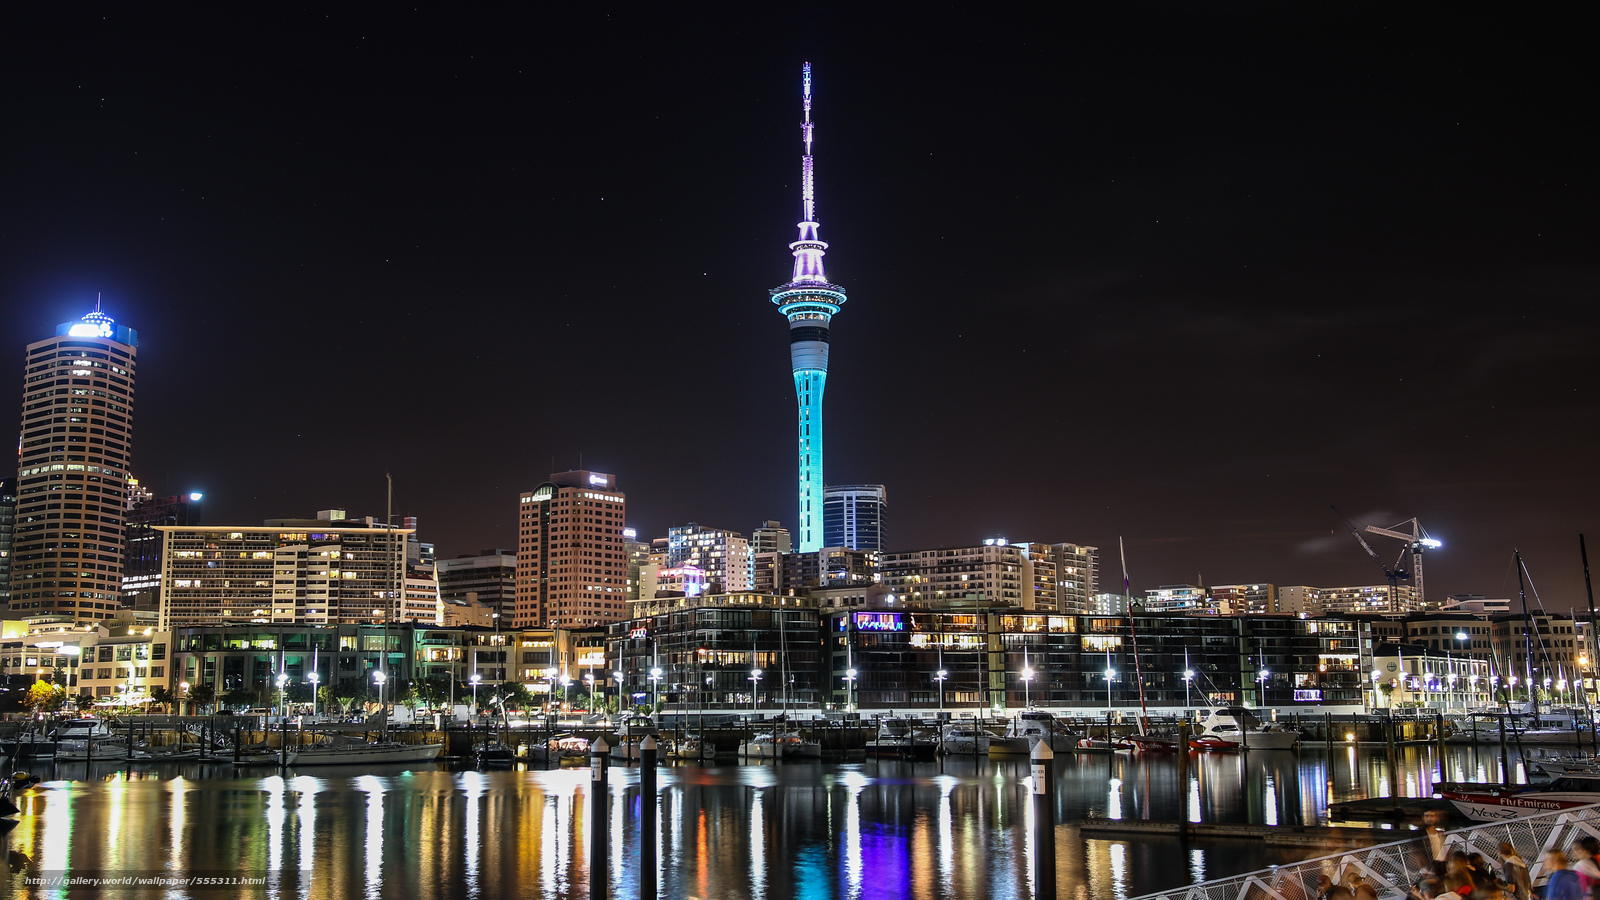 Video Nouvelle Zelande Gallery: Sky Tower Auckland Wallpaper, Check Out Sky Tower Auckland